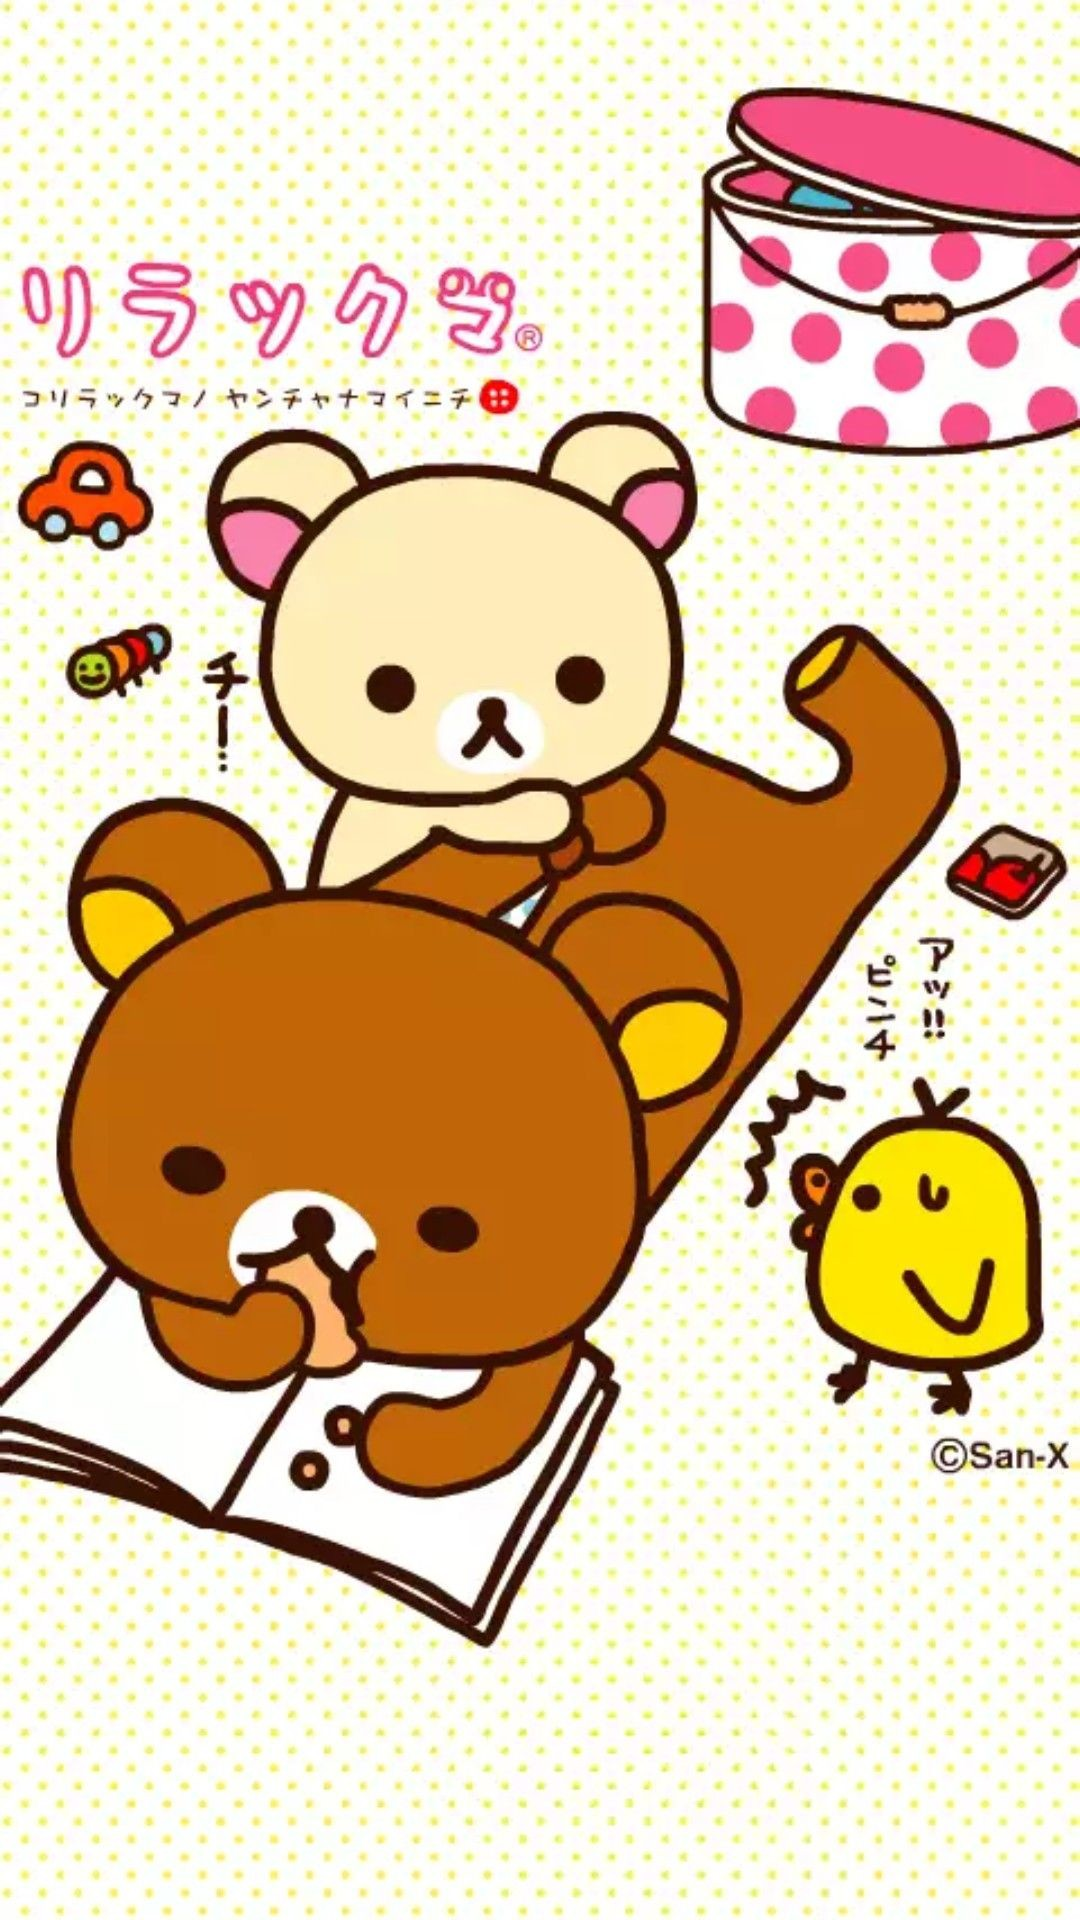 Res: 1080x1920, Rilakkuma Wallpaper, Kawaii Cute, Kawaii Stuff, Iphone Wallpapers